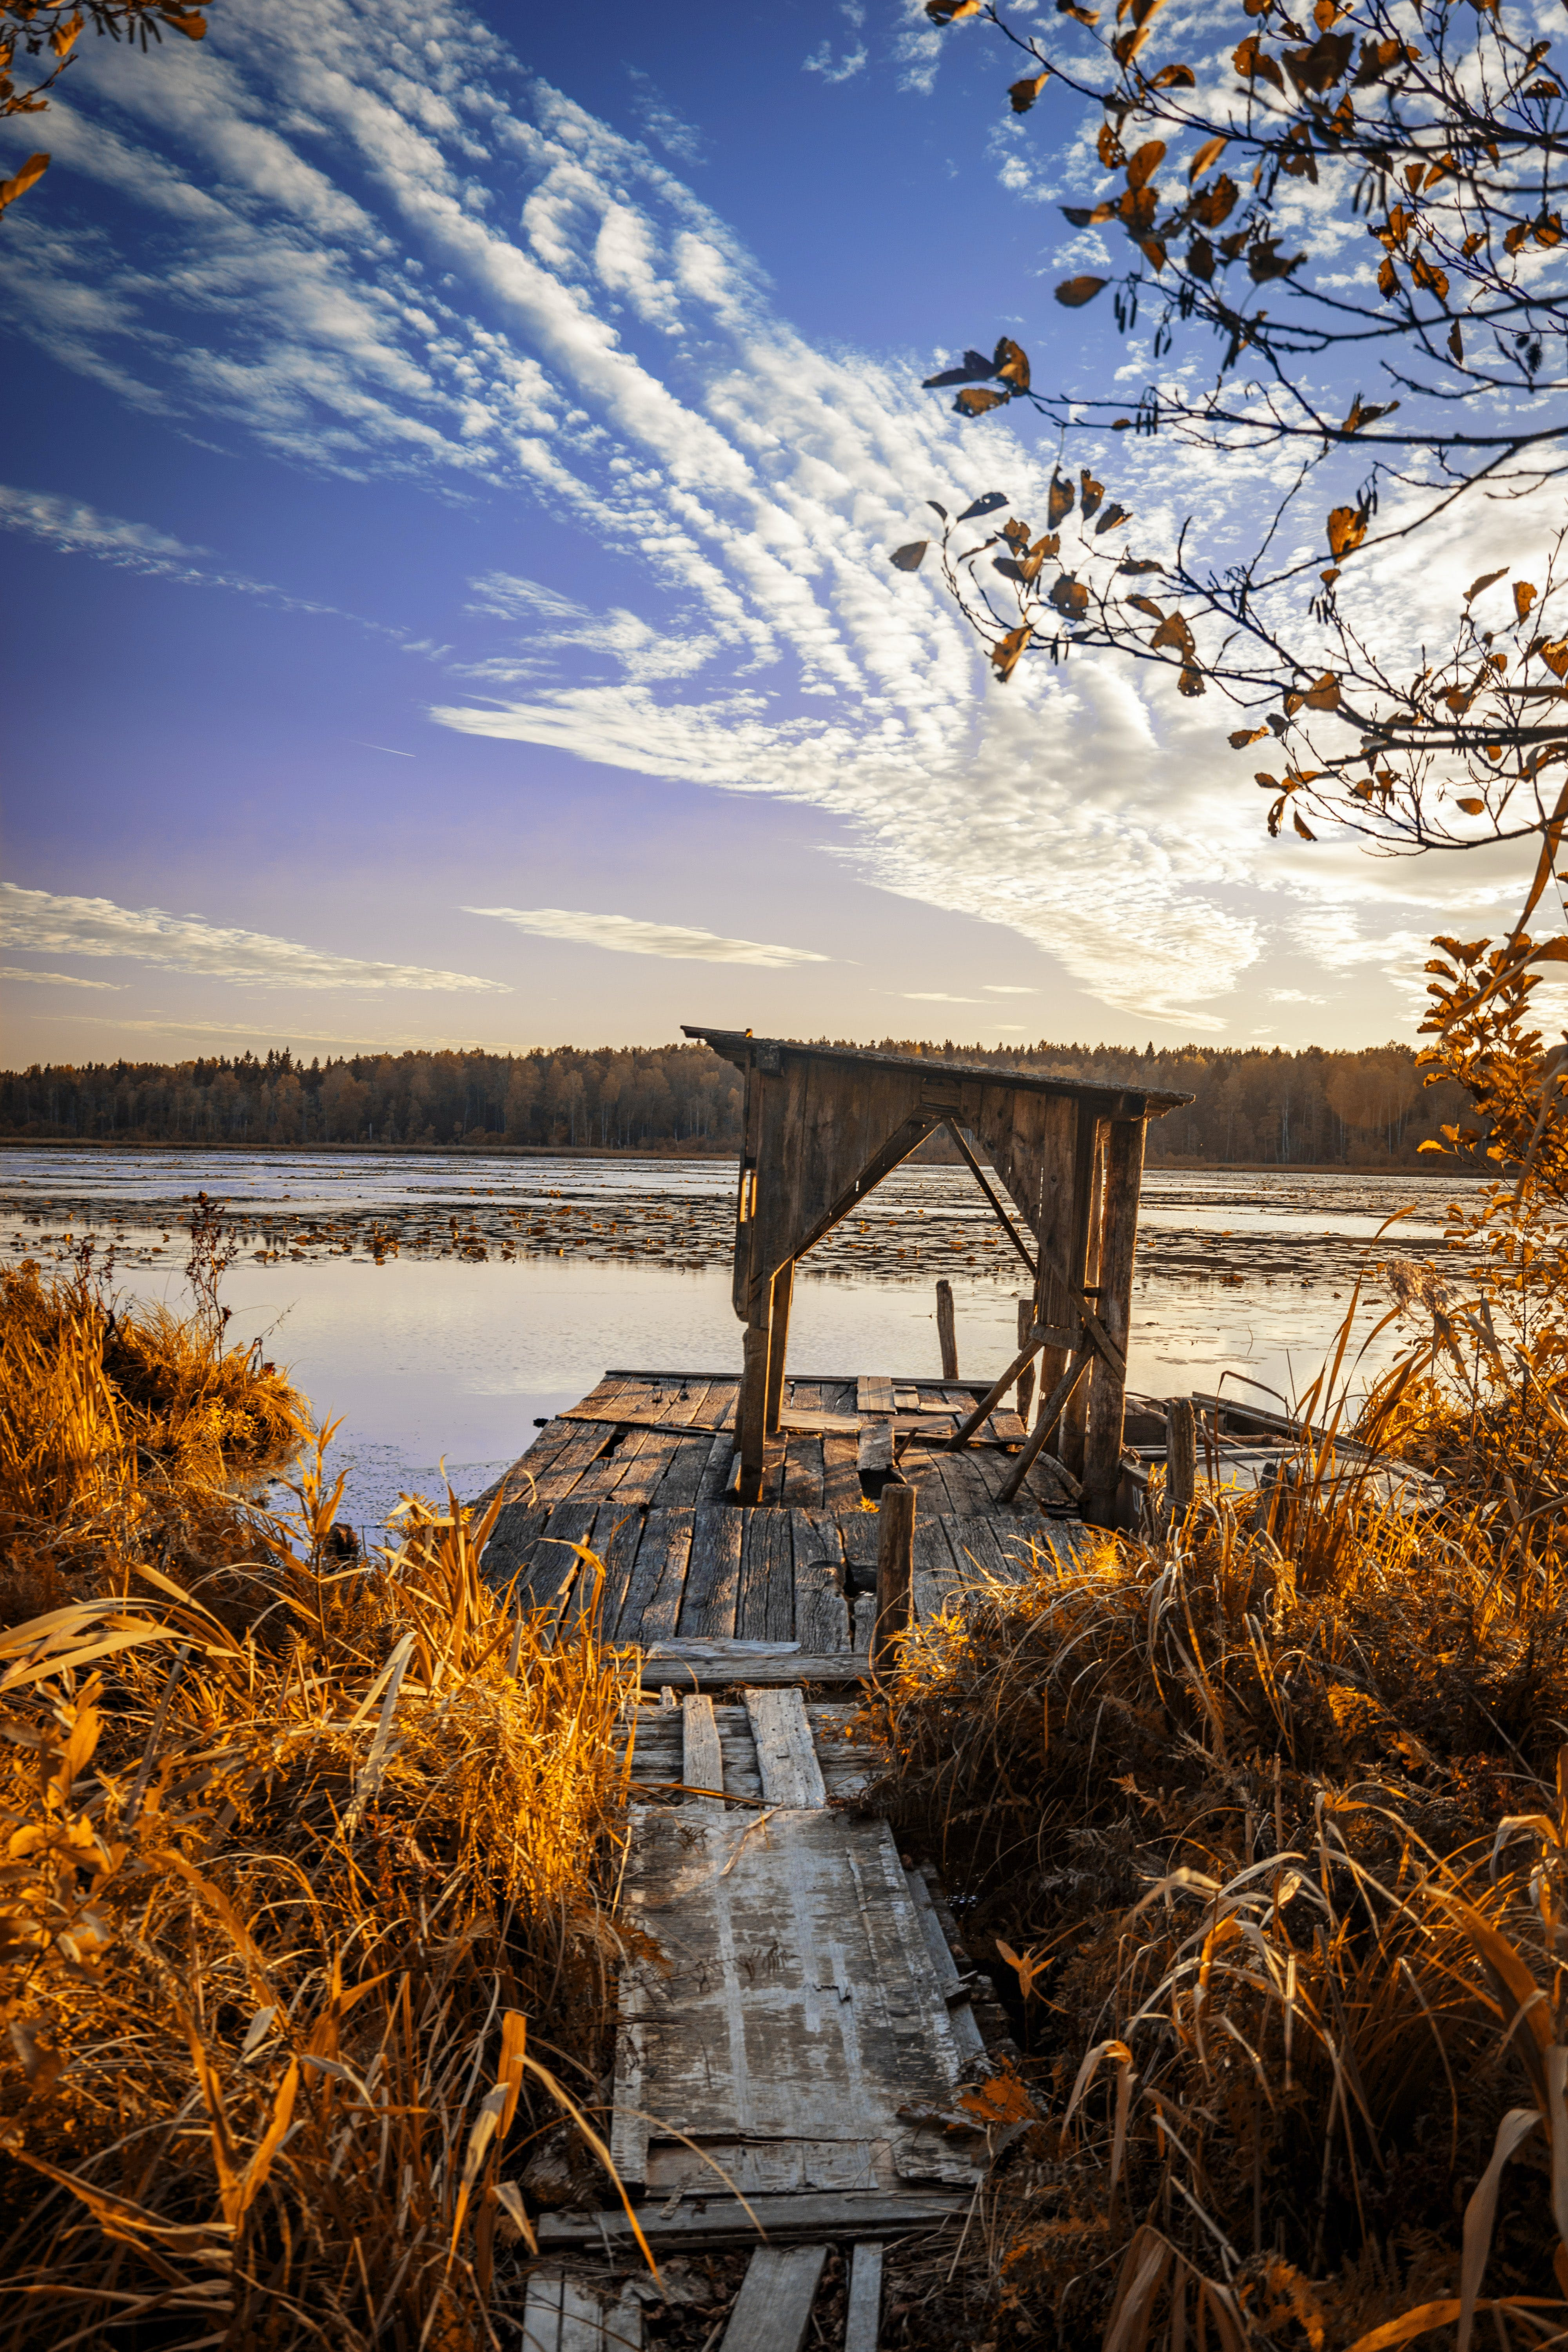 Grass-covered Brown Wooden Dock by a Body of Water during Day